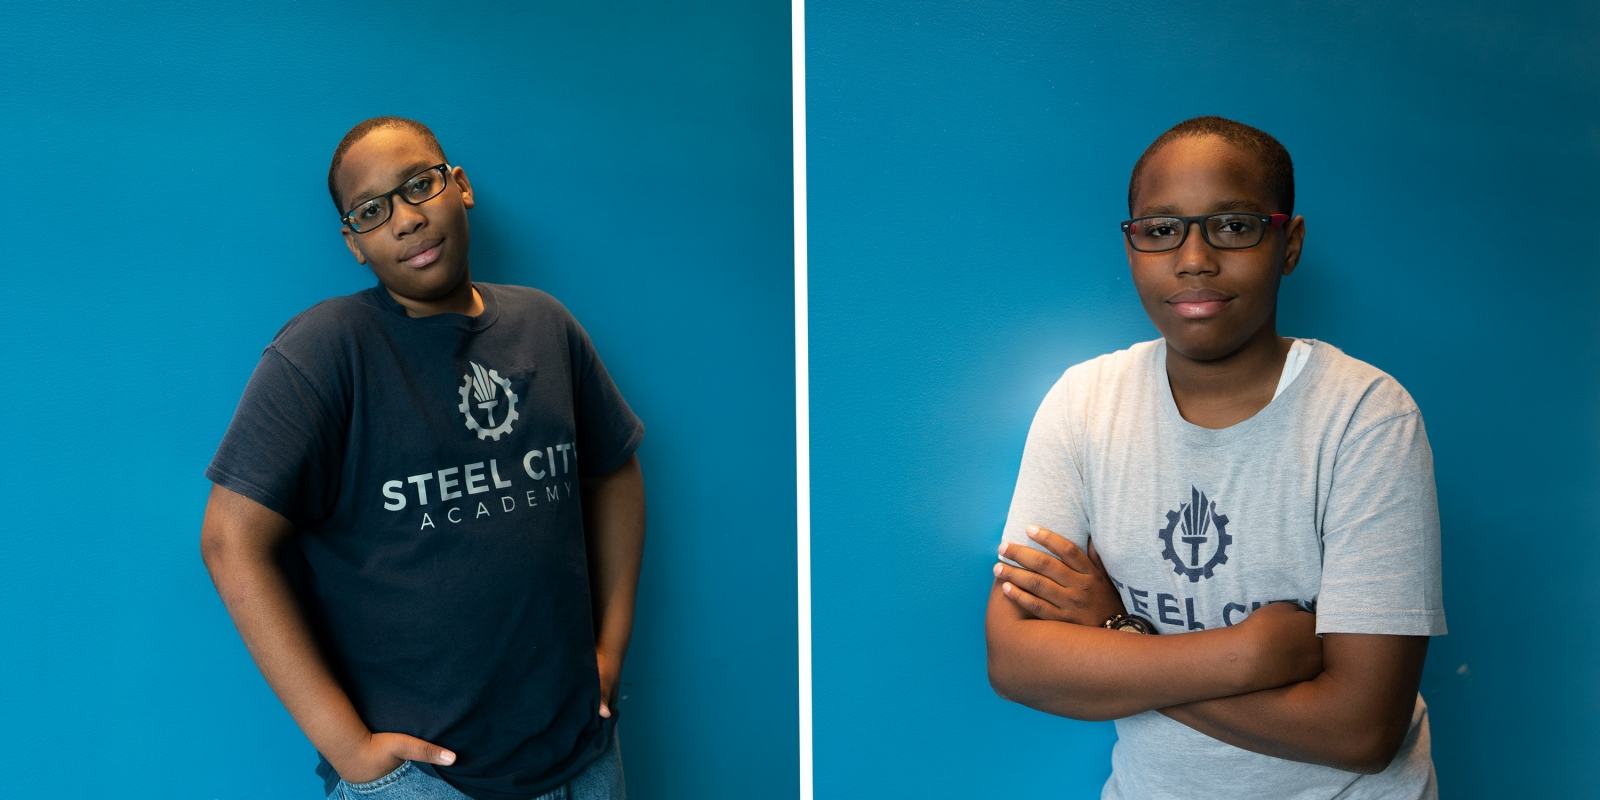 Brothers Evan and Erin Addison, students of the Steel City Academy in Gary, Indiana, pose for portraits.